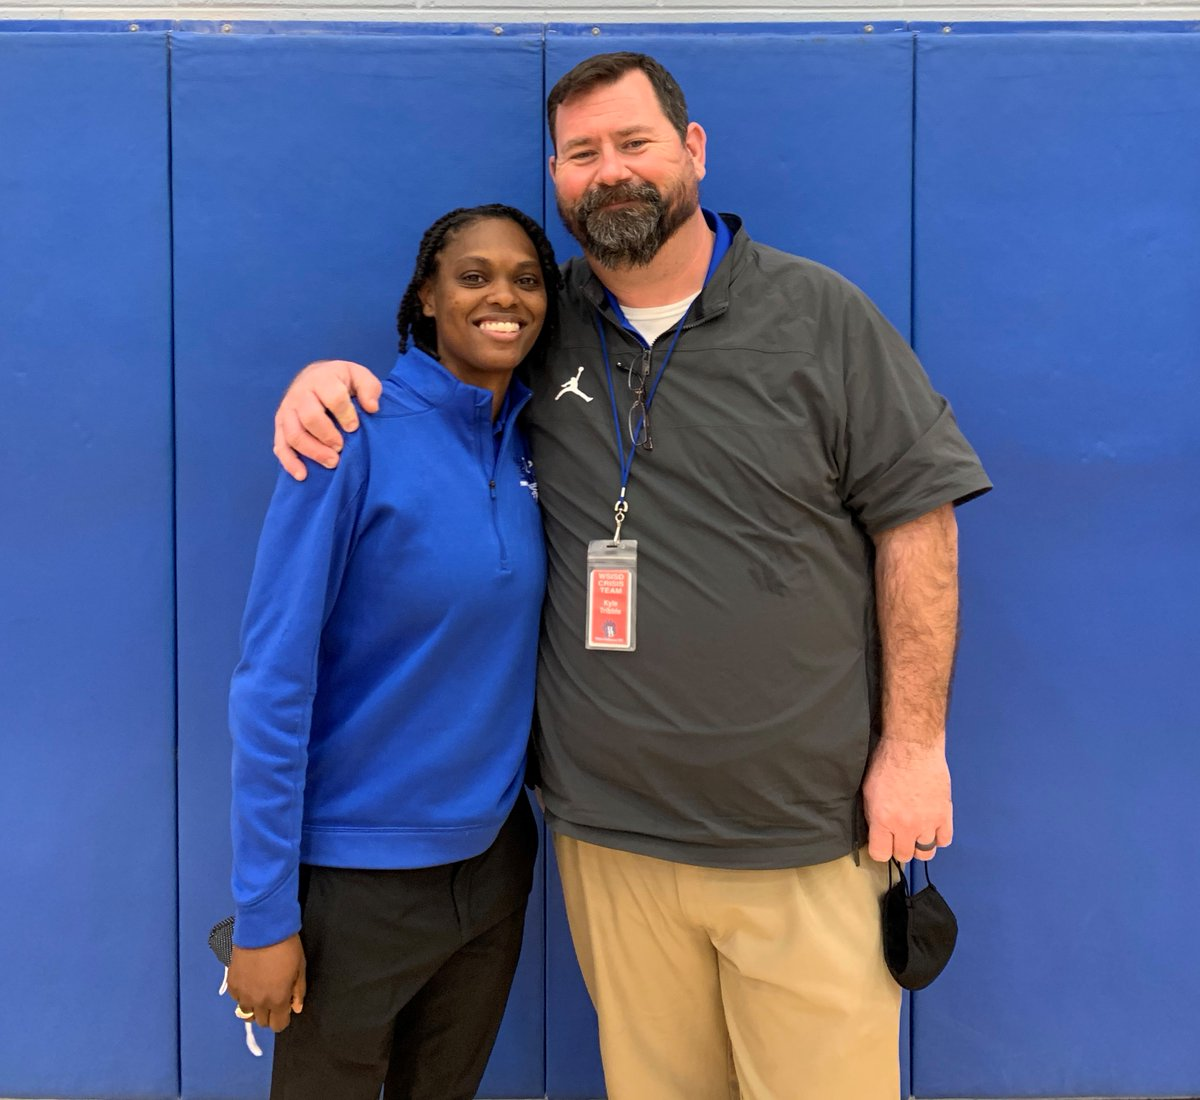 This year for #NATM2021, I wanted to take a moment each week to highlight each of the individuals I work with. @Madison_LAT_ATC is without a doubt one of the hardest working individuals I have ever met and a future leader in our industry. So happy she is a Brewer Bear! #therock